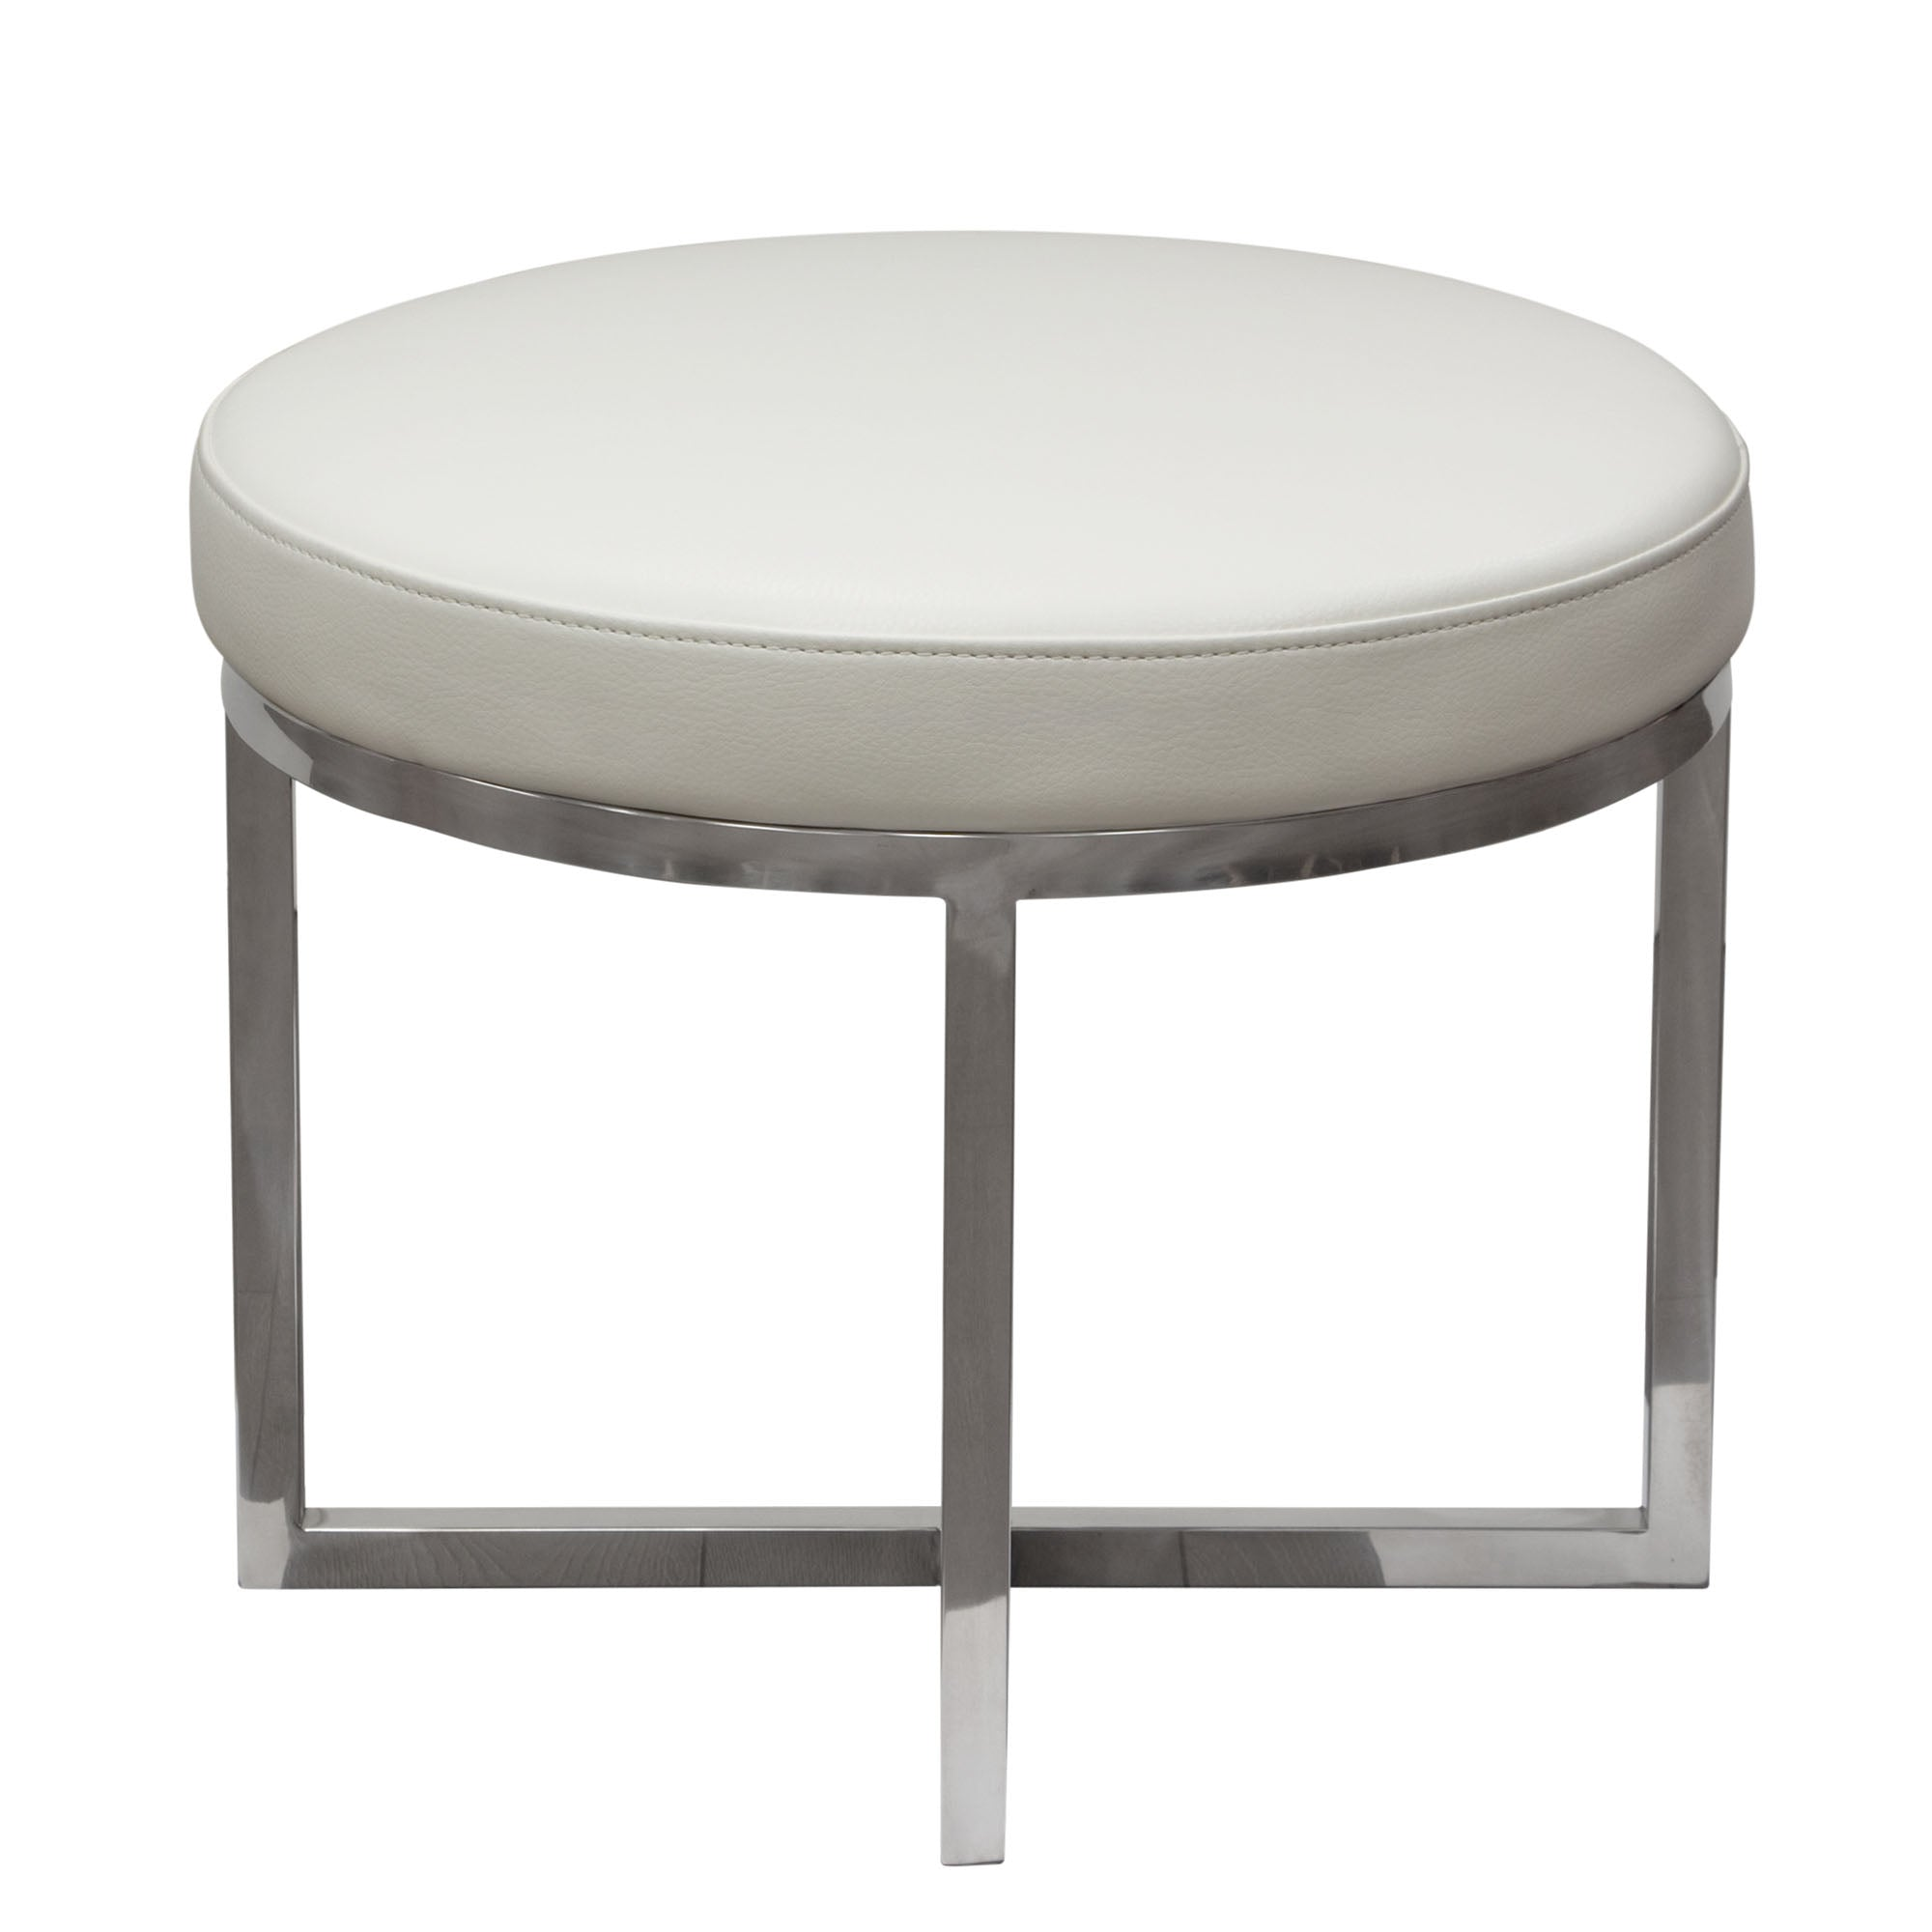 Ritz Round Accent Stool - White